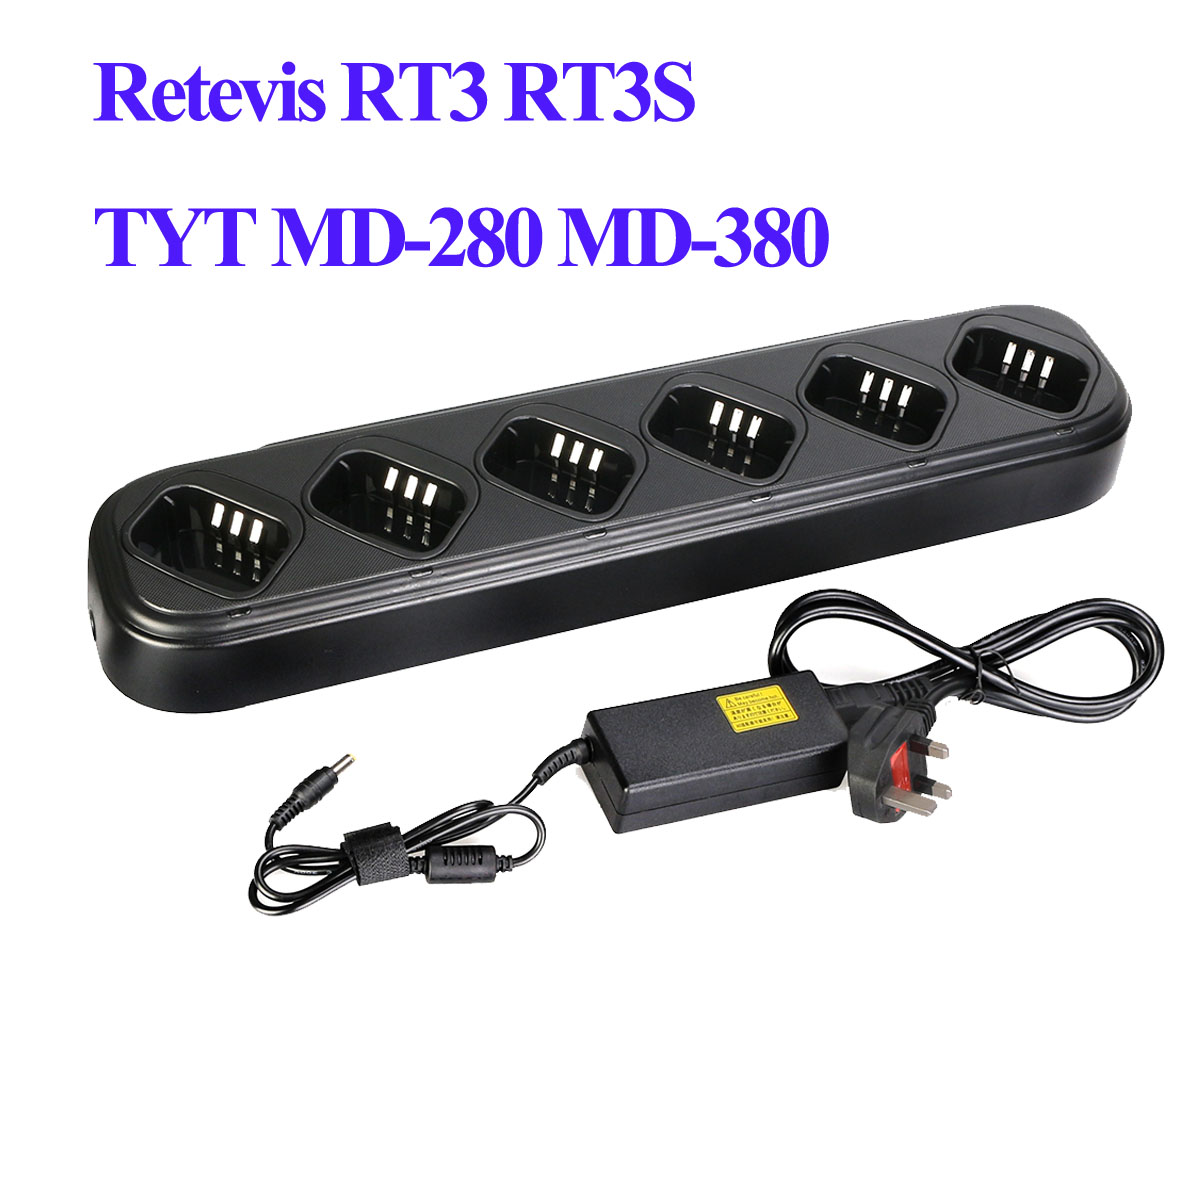 Six-way Universal Rapid Charger for TYT MD-280 MD-380 Retevis RT3 Radio//Battery